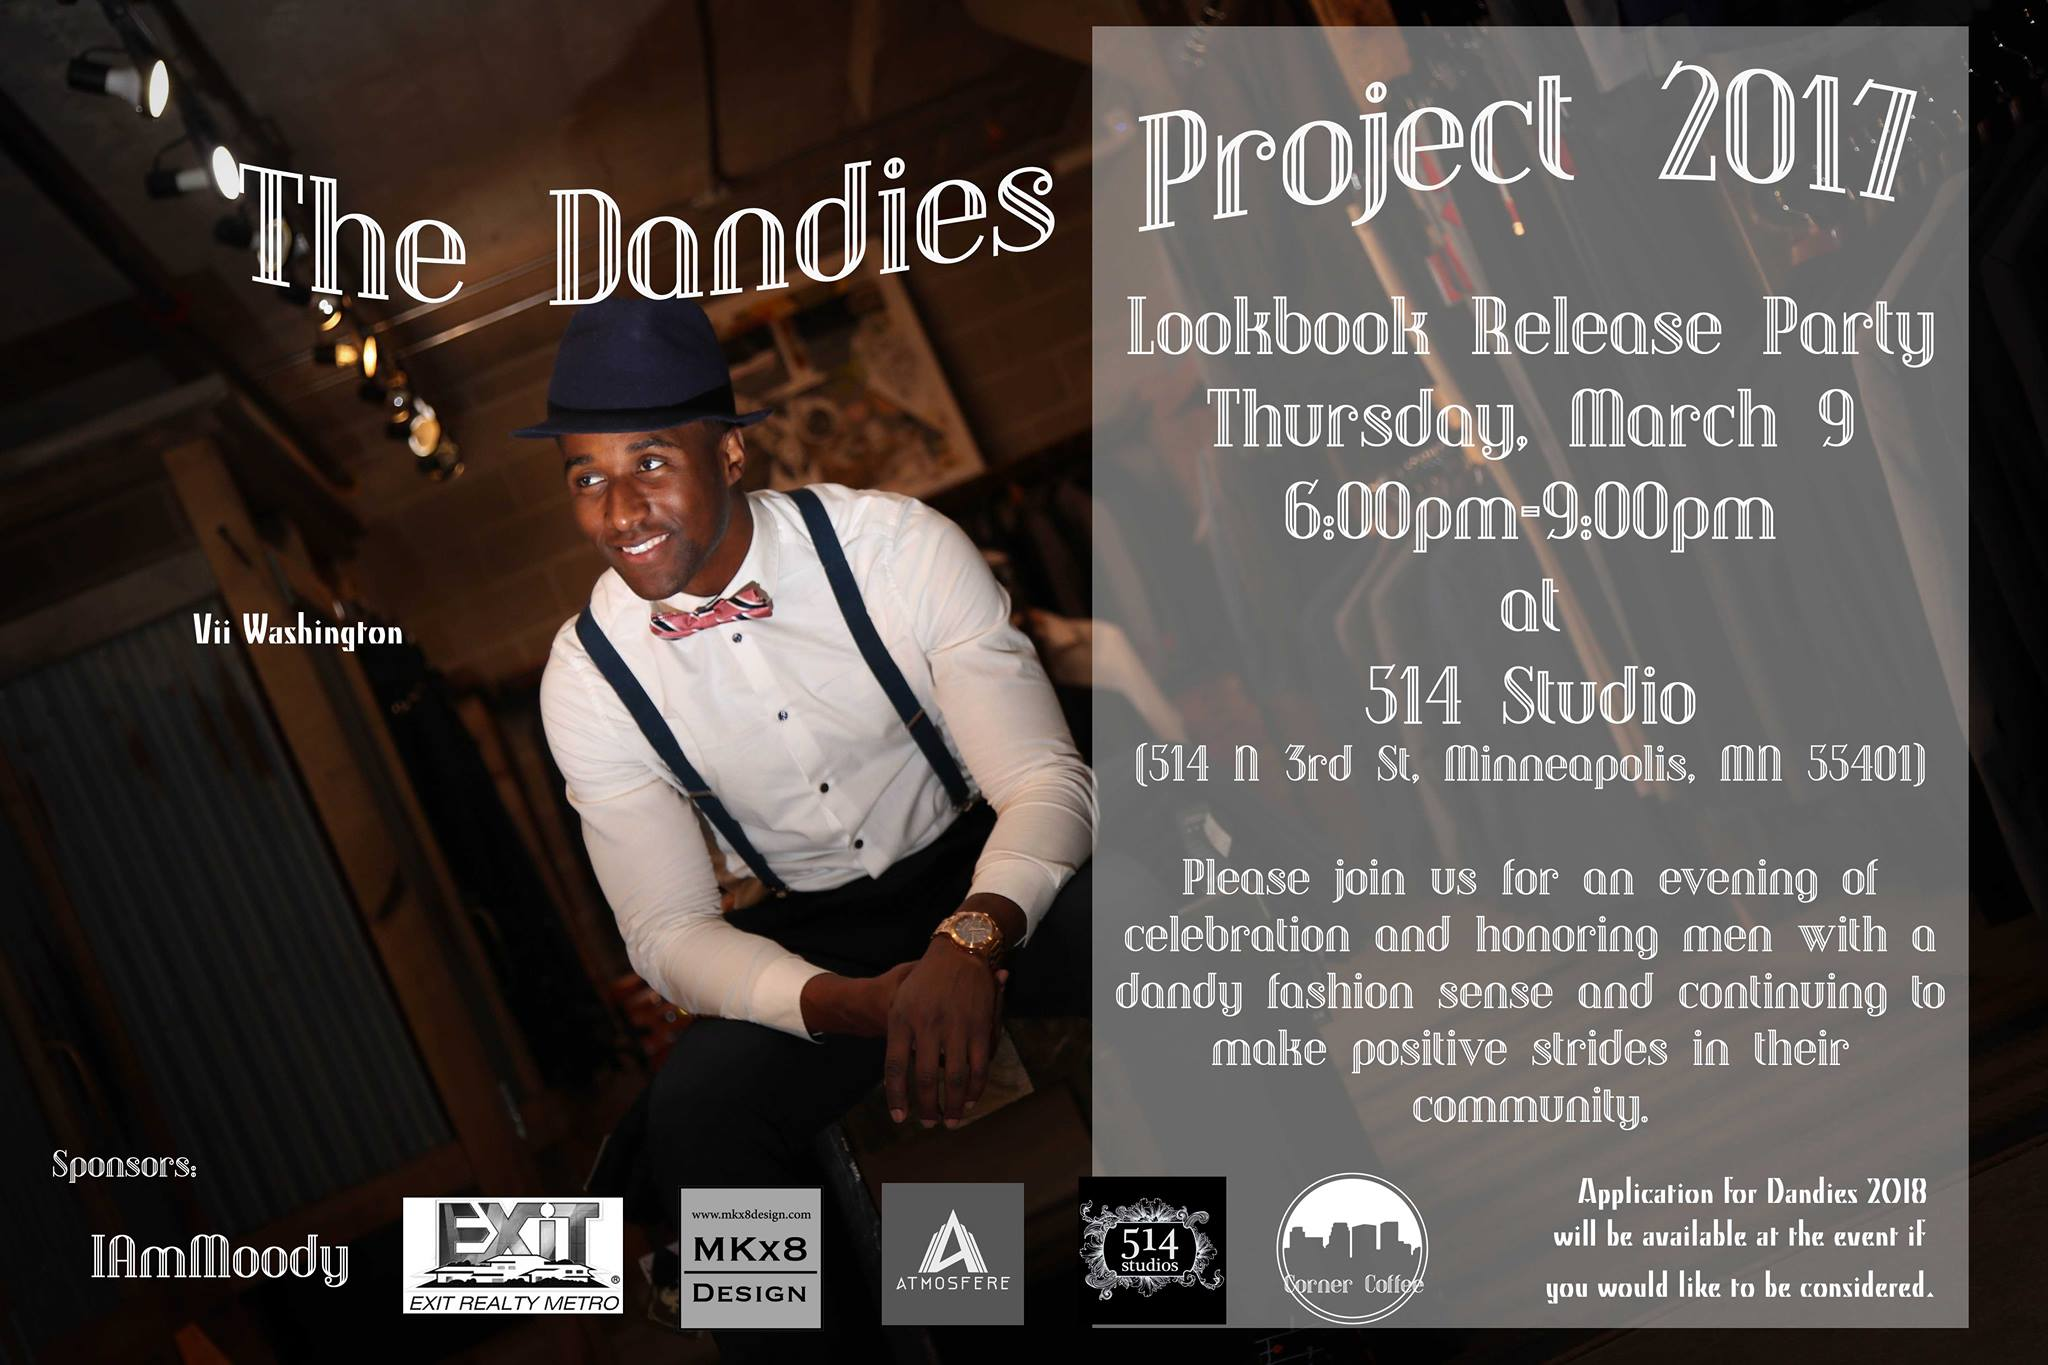 Dandies Project 2017